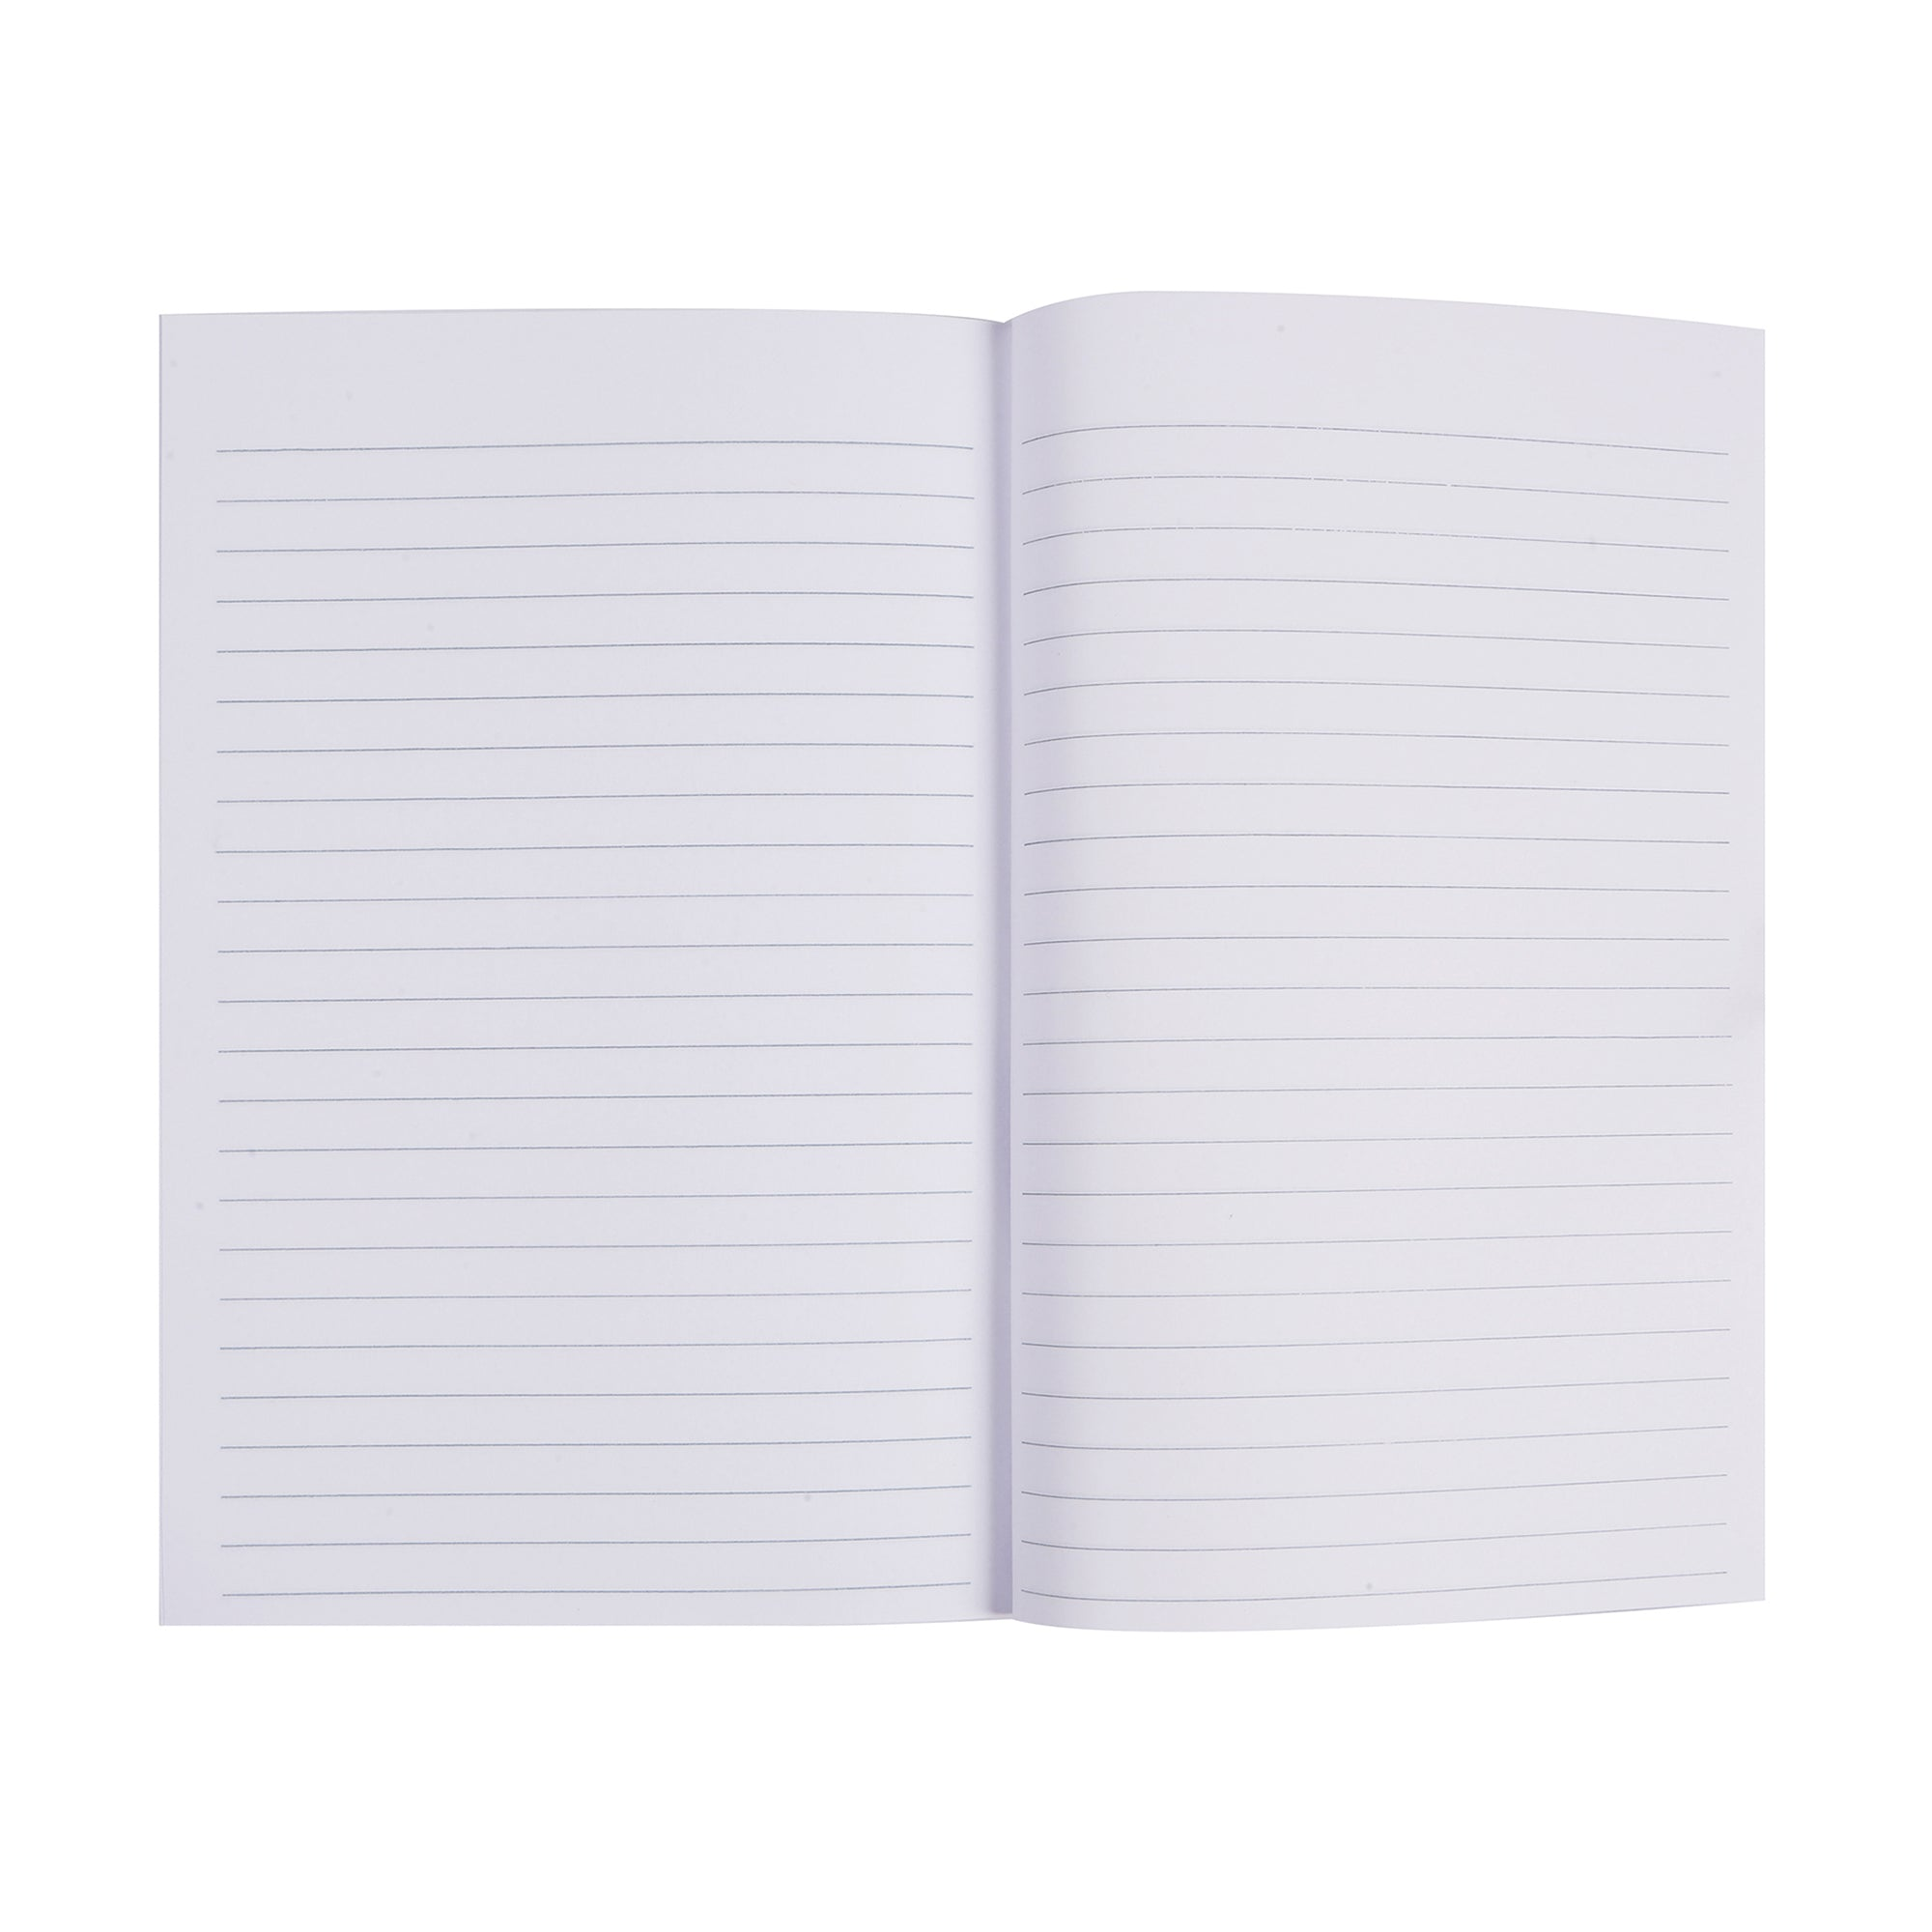 Flying Animal Notebooks (Pack Of 4 - 120 Pages)